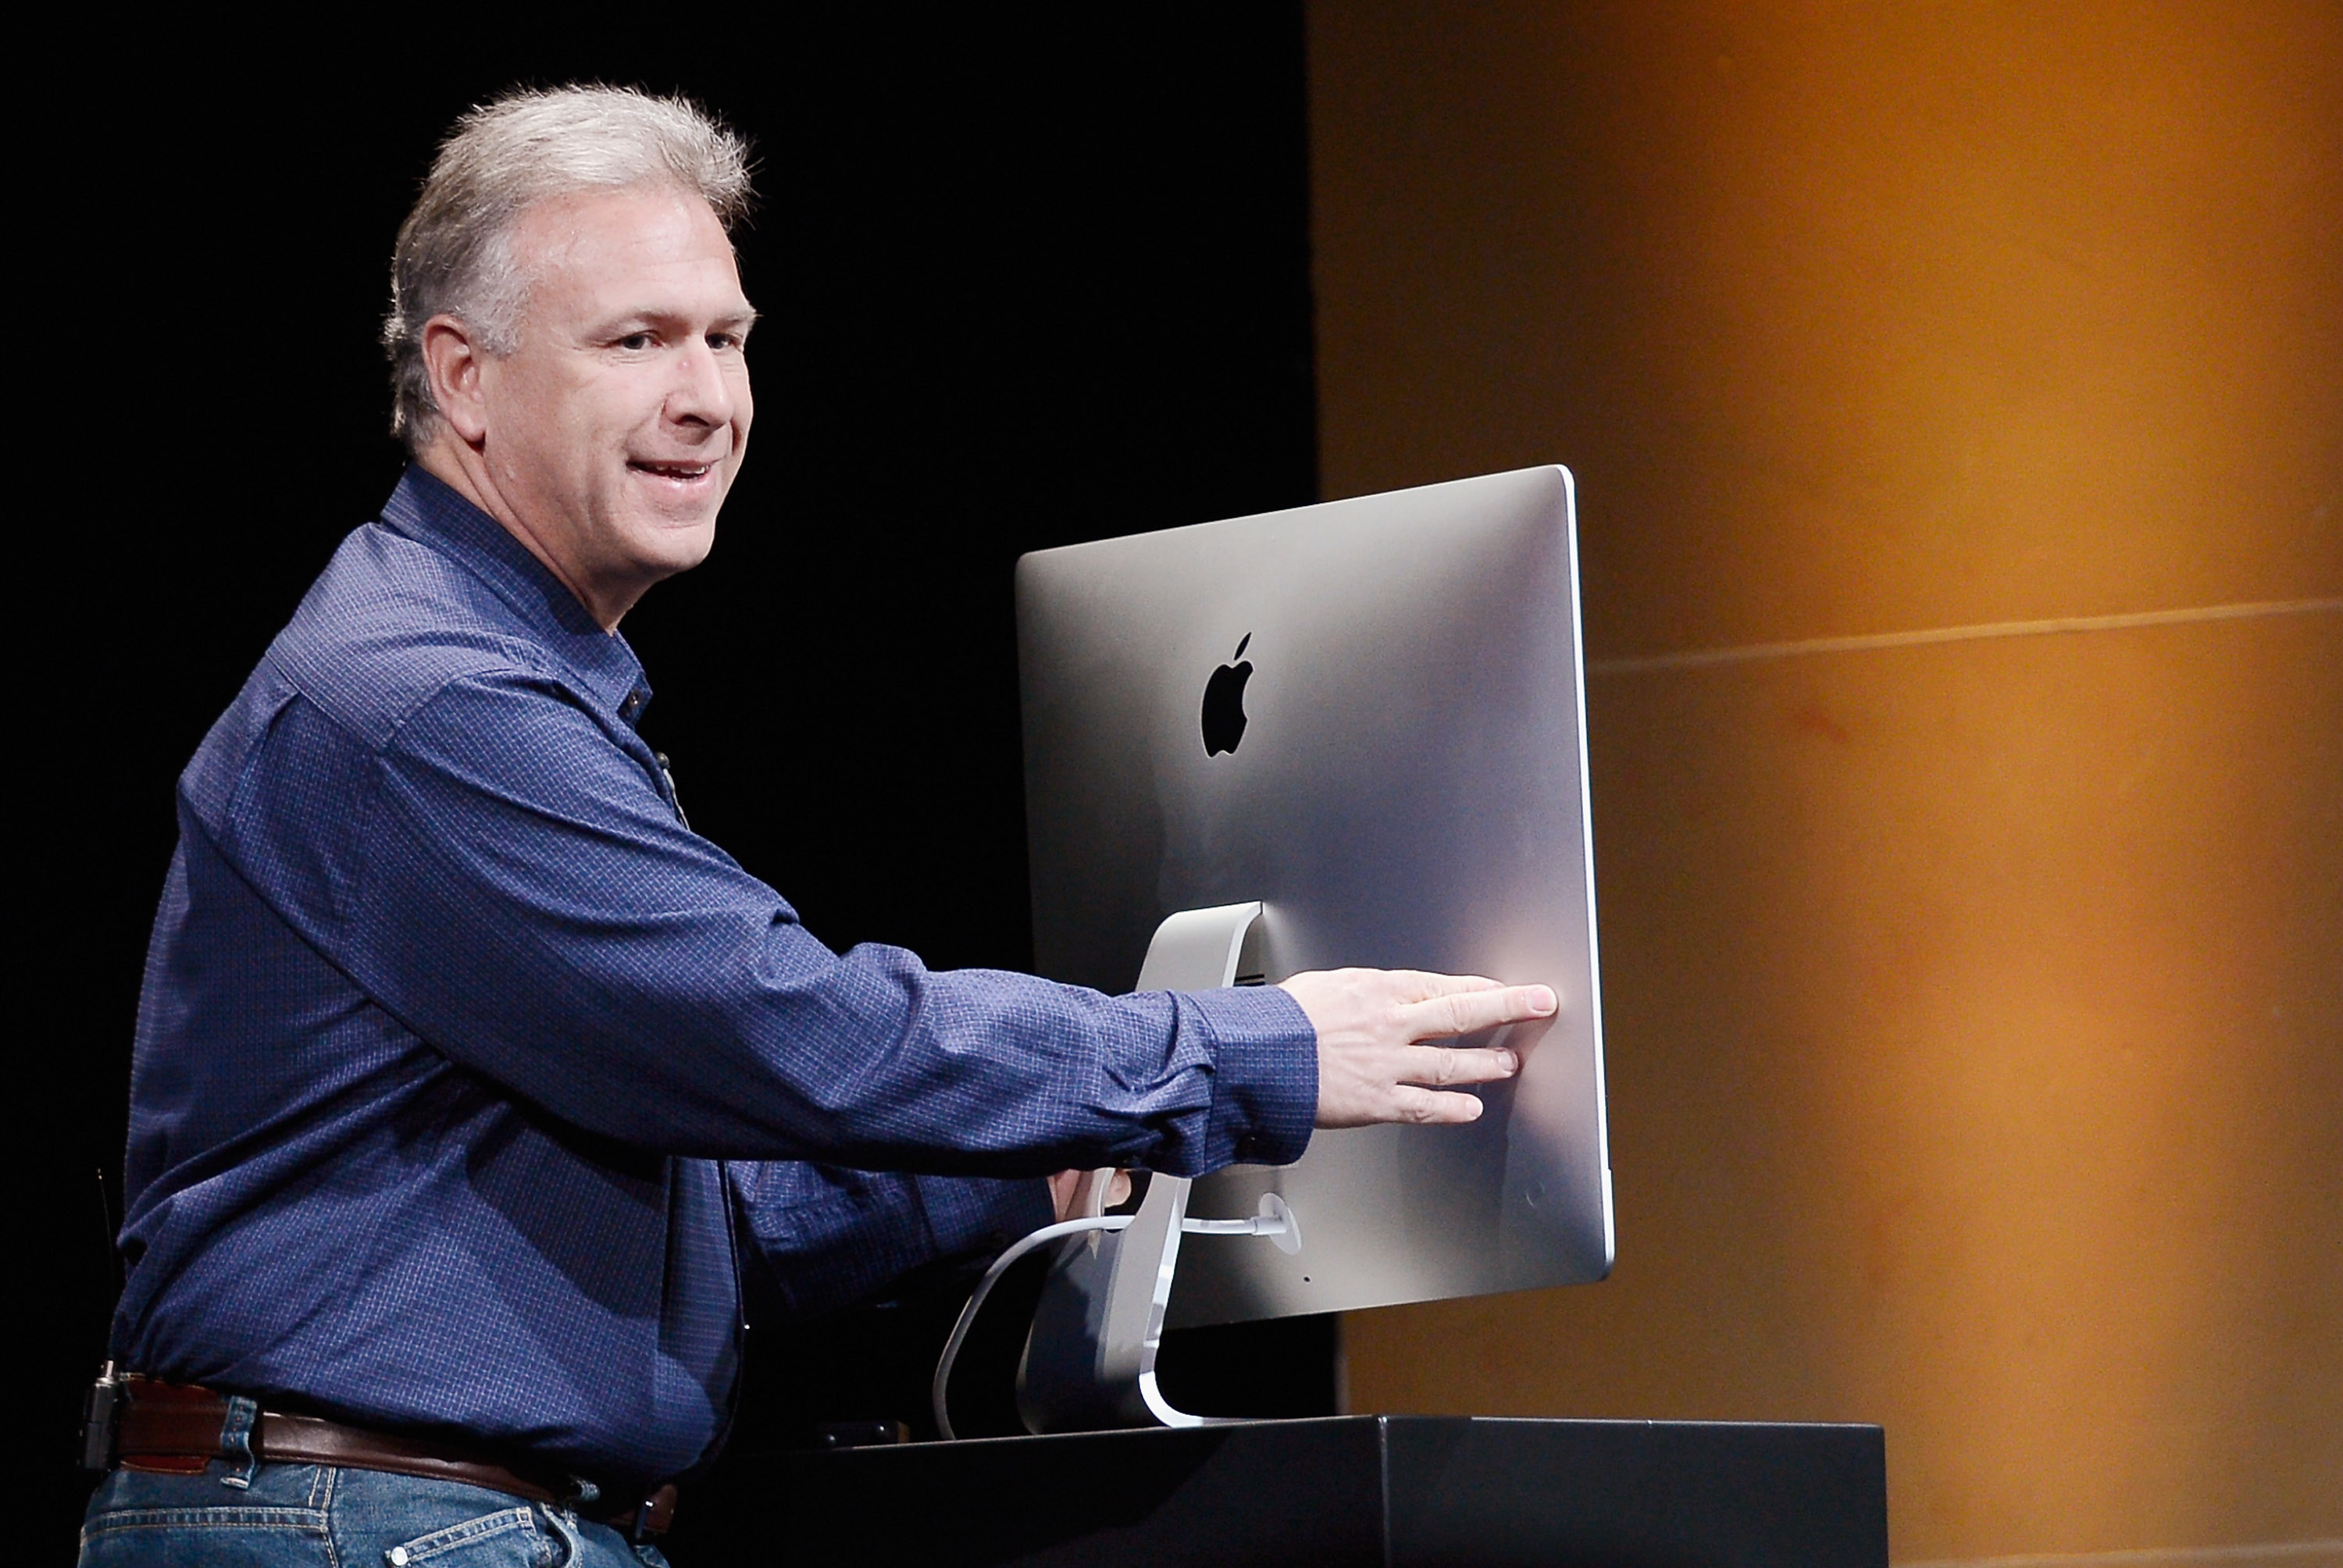 How to Reset a MacBook Pro to Factory Settings Without a